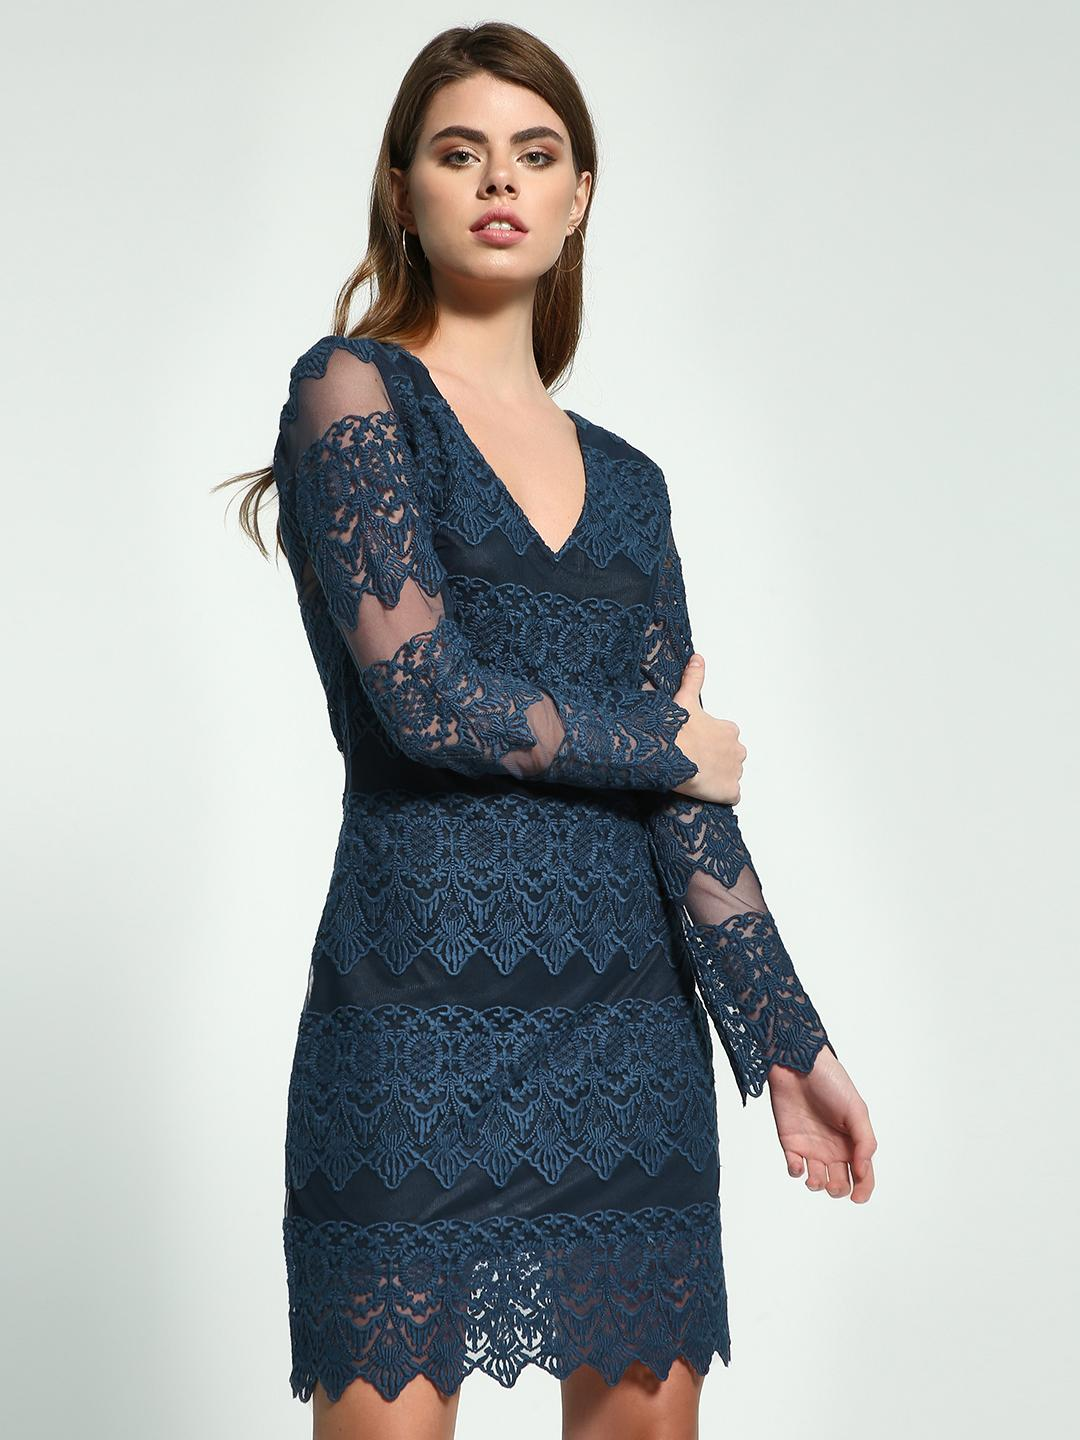 Ri-Dress Blue Mesh Floral Lace Shift Dress 1